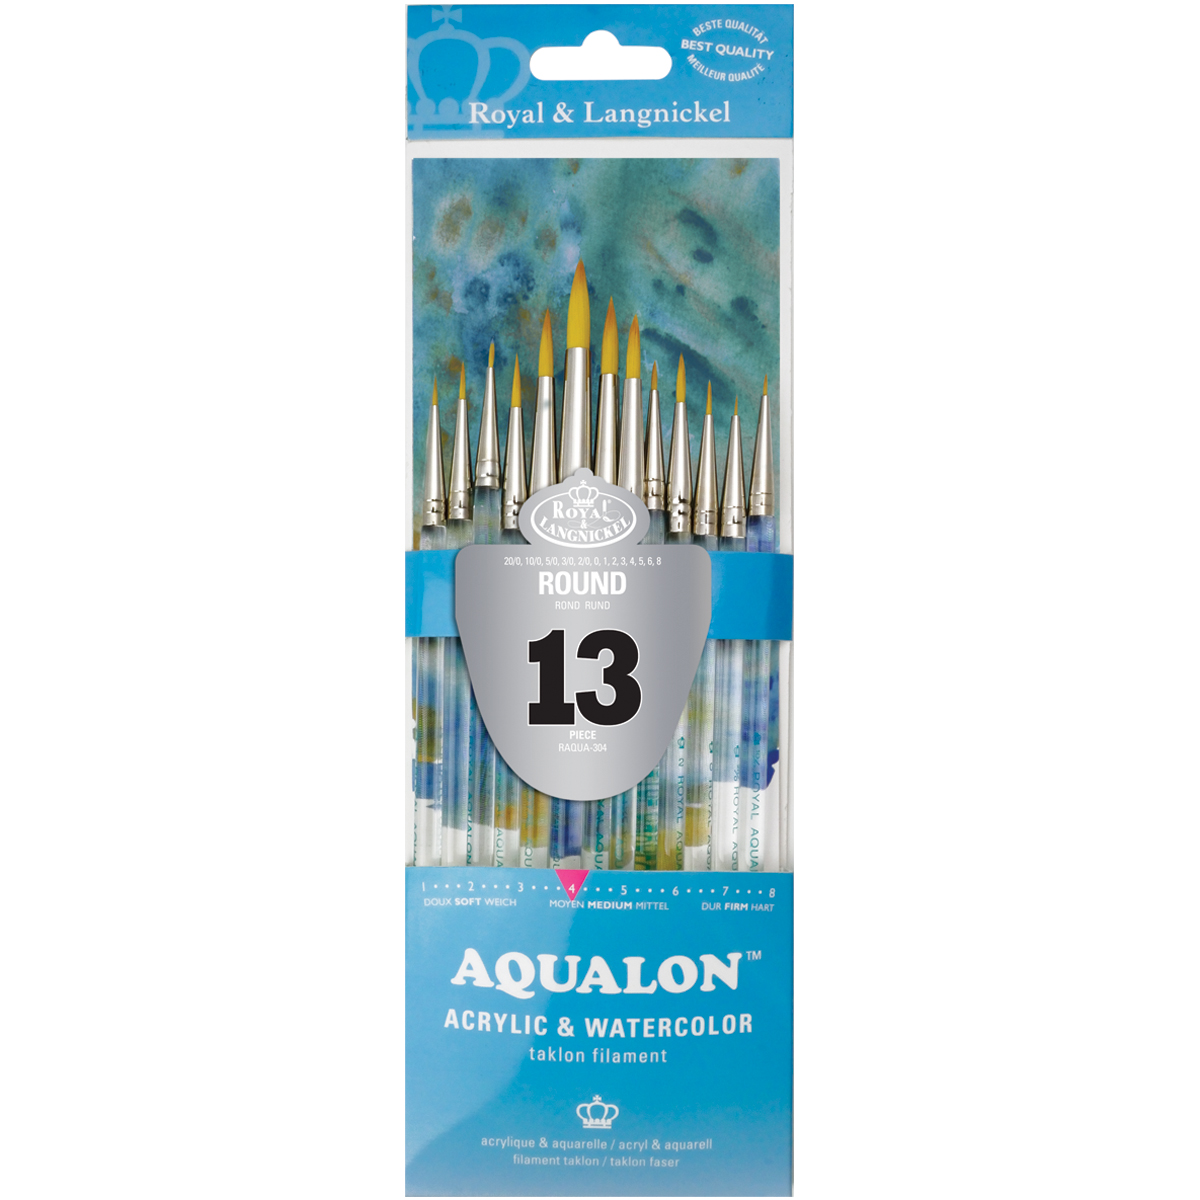 Aqualon Value Pack Brush Set-Round 13/Pkg